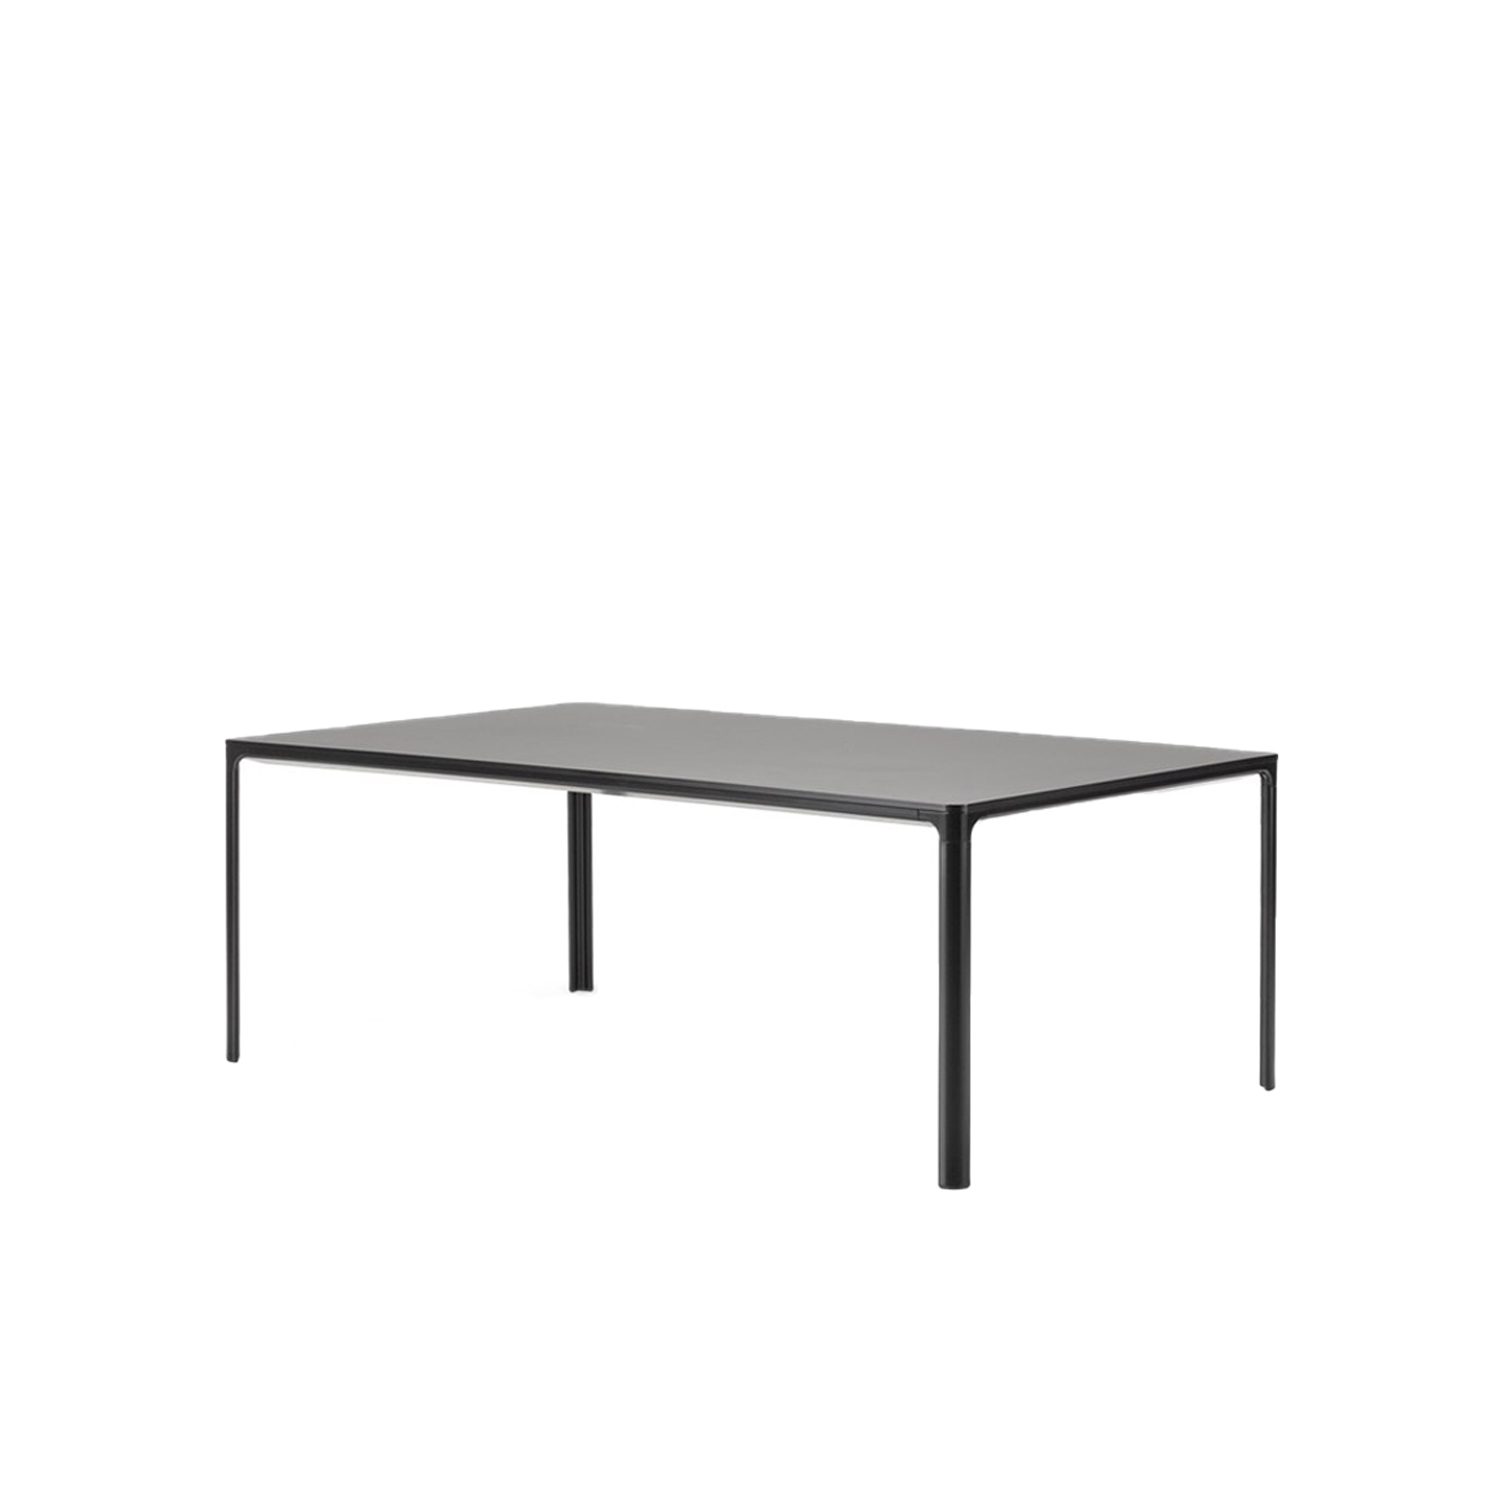 Mesa 4625 Table - With its slim 14 mm tabletop, Mesa is an understated line drawn through the room. The linoleum or laminate tabletop stands in sharp contrast to the soft curves of the aluminium frame and legs.  A simple, versatile table that blends seamlessly into any décor, Mesa gives the impression of a slim line that appears across a room. Boasting a thin tabletop laminate in contrast to the soft curves of the aluminium frame. Attached to the frame are the legs, which are placed at the outermost edges of the table. Allowing for the most leg room possible for any type of chair imaginable.   Whether as a desk, dining table or conference table, Mesa is a discrete, durable solution that's easy to assemble and disassemble. In a streamlined aesthetic that makes it a natural choice for virtually any situation. Adding a tranquil sense of simplicity even to the busiest of environments. | Matter of Stuff